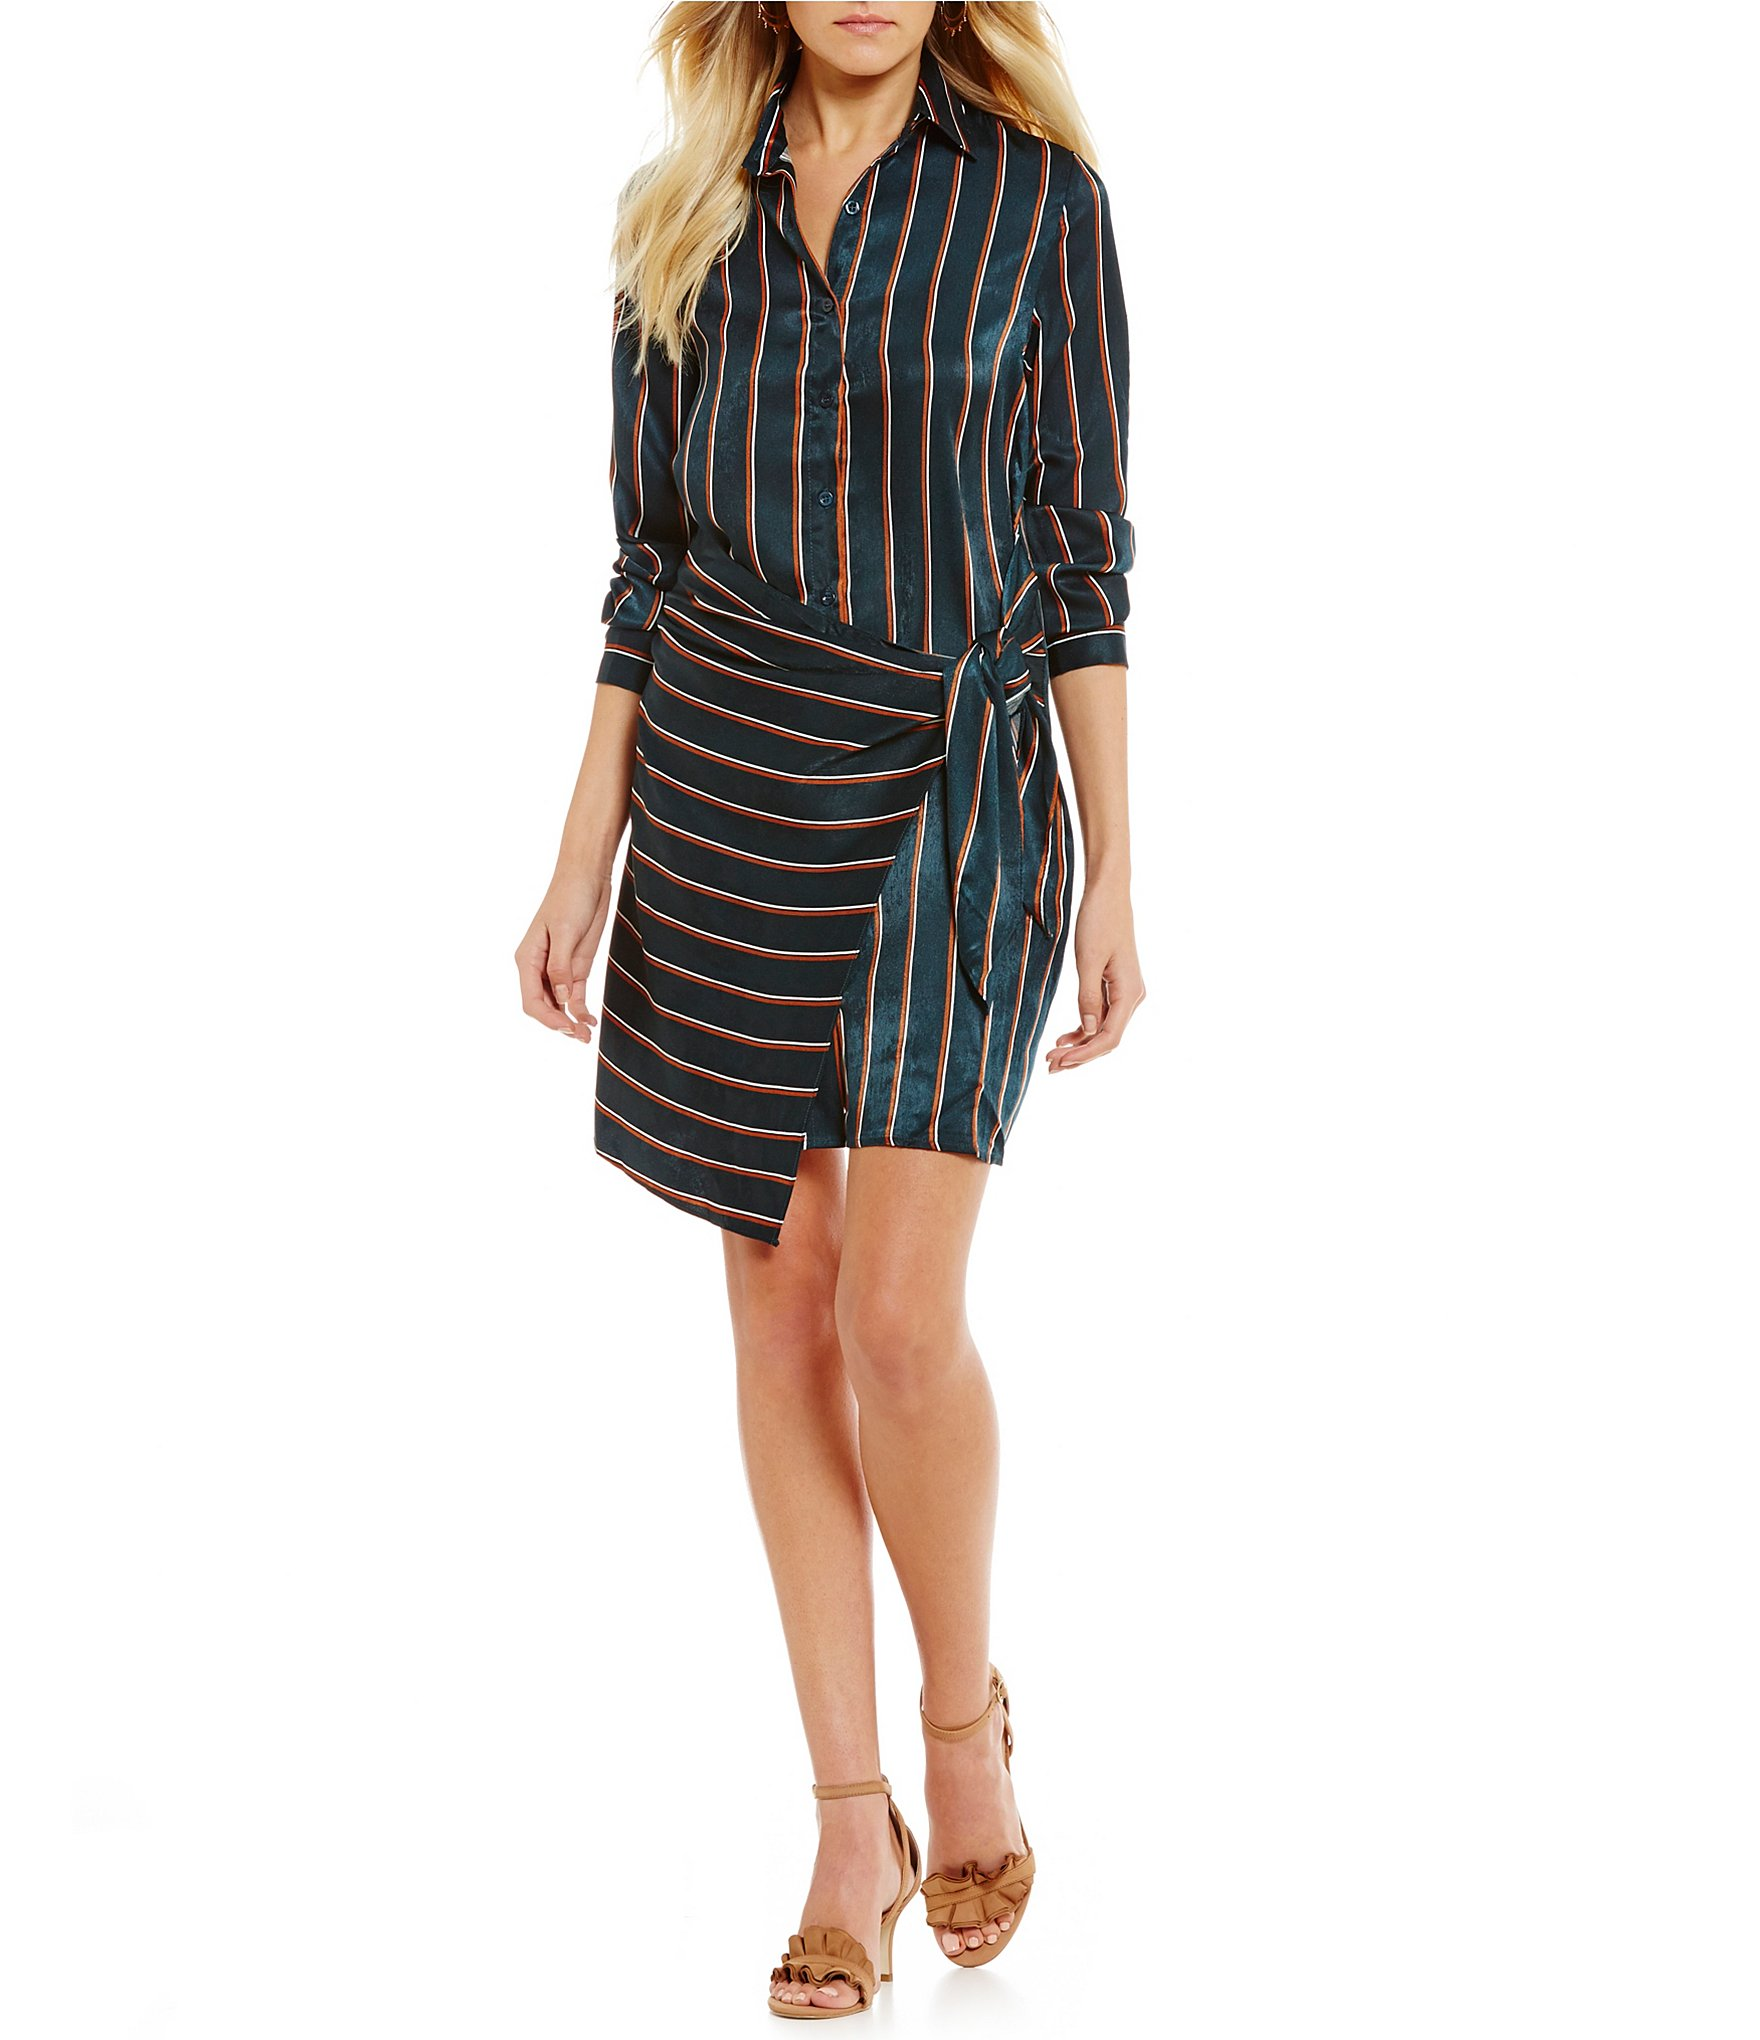 J O A Striped Tie Waist Wrap Shirt Dress Dillards